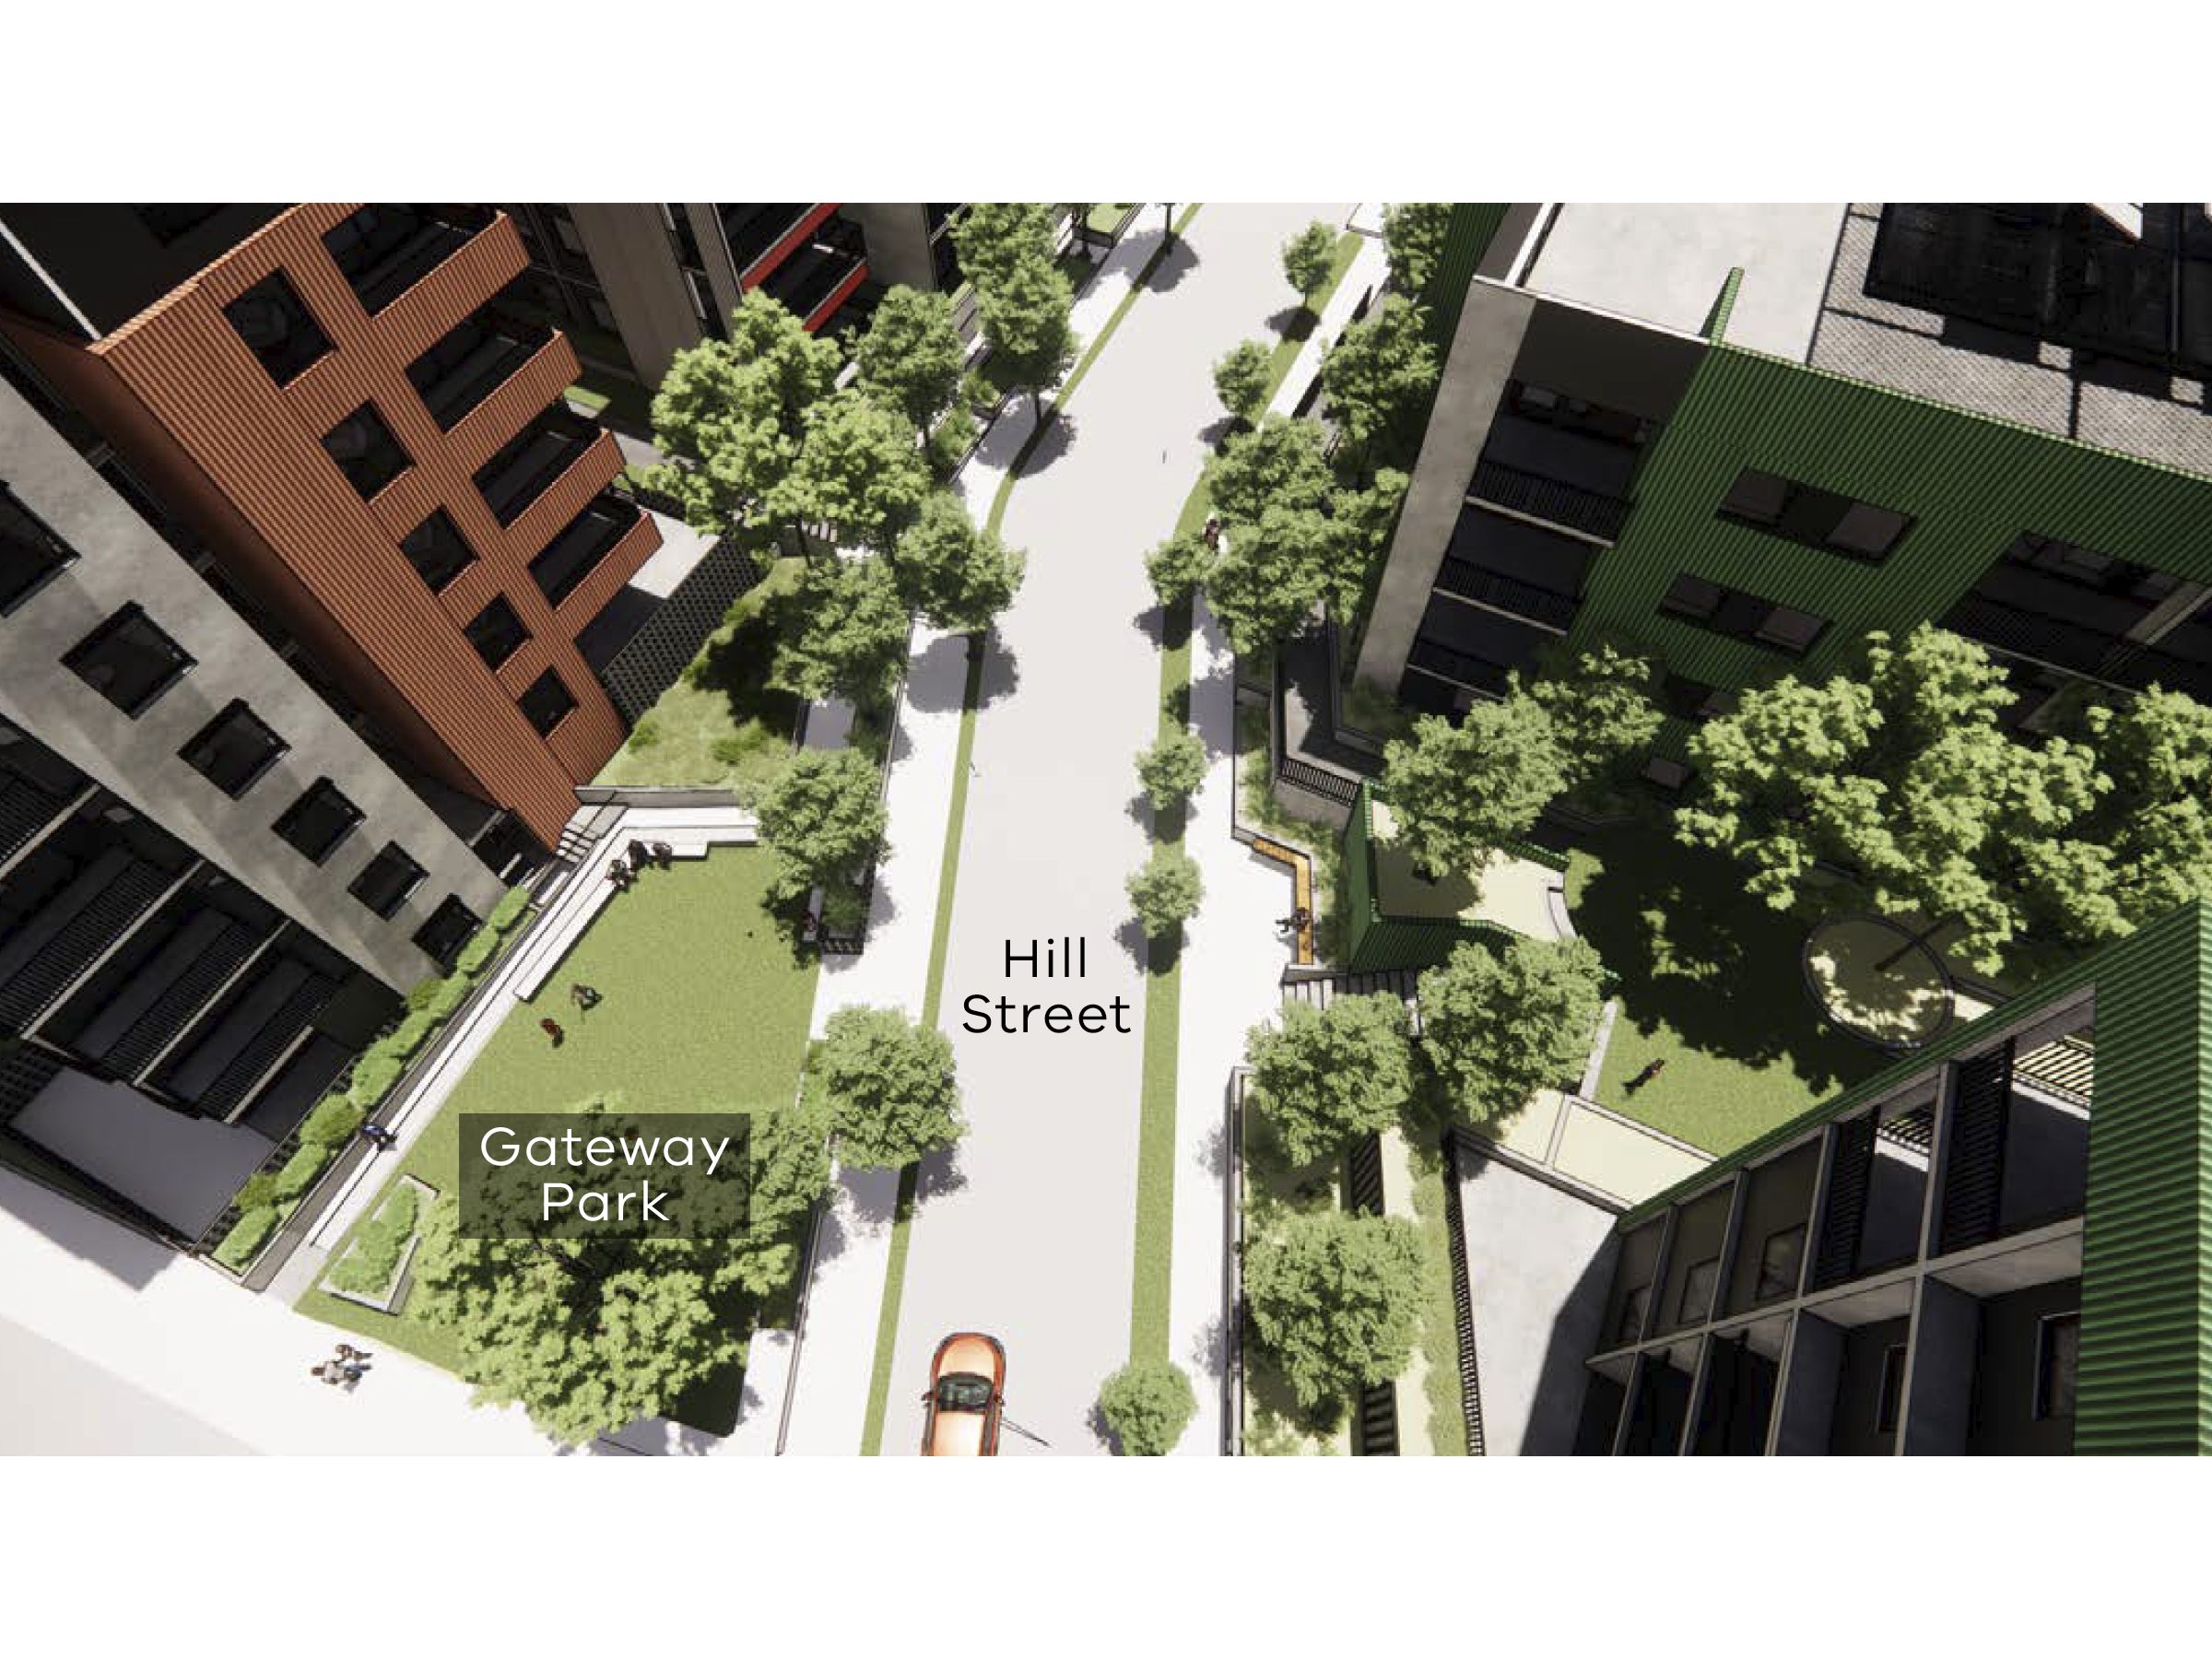 Artist impression showing an aerial view of the new development including the Gateway Park and Hill Street